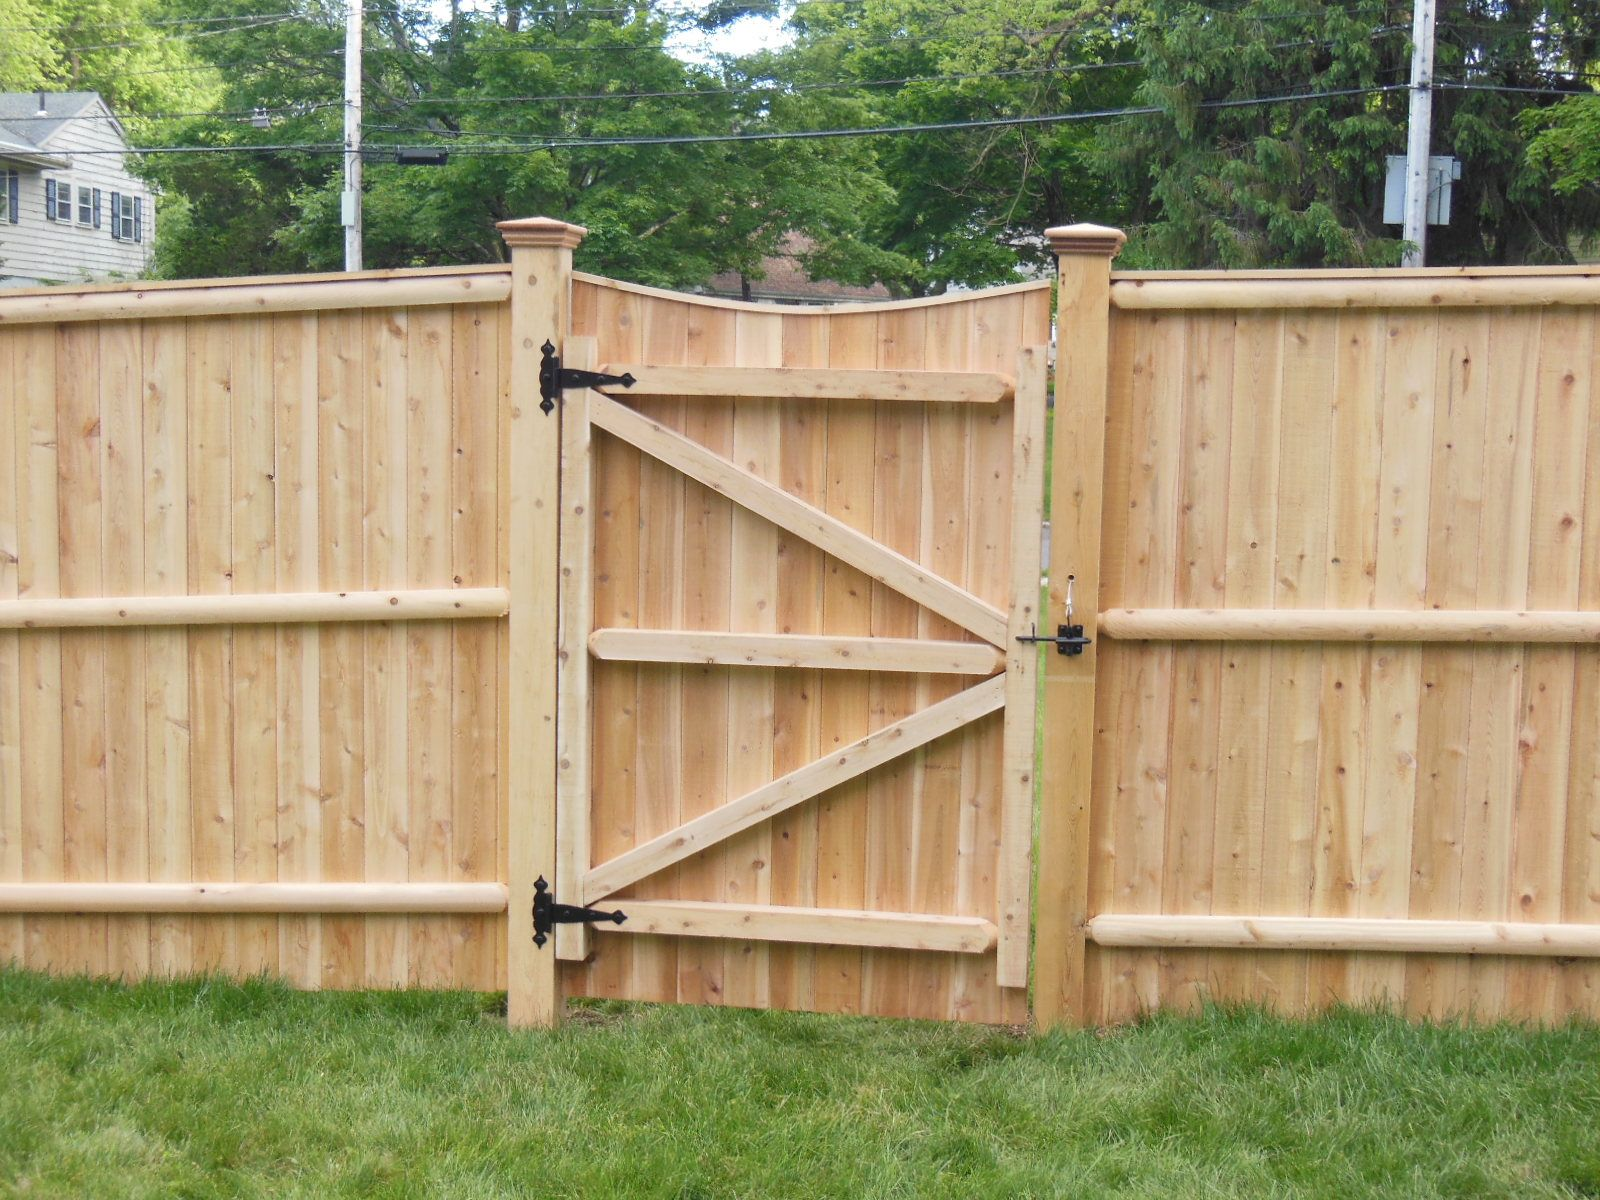 Fence Gate Design Ideas corner pergola Fence Gate Designs Cedar Lattice With Gate Fences Boston Ma